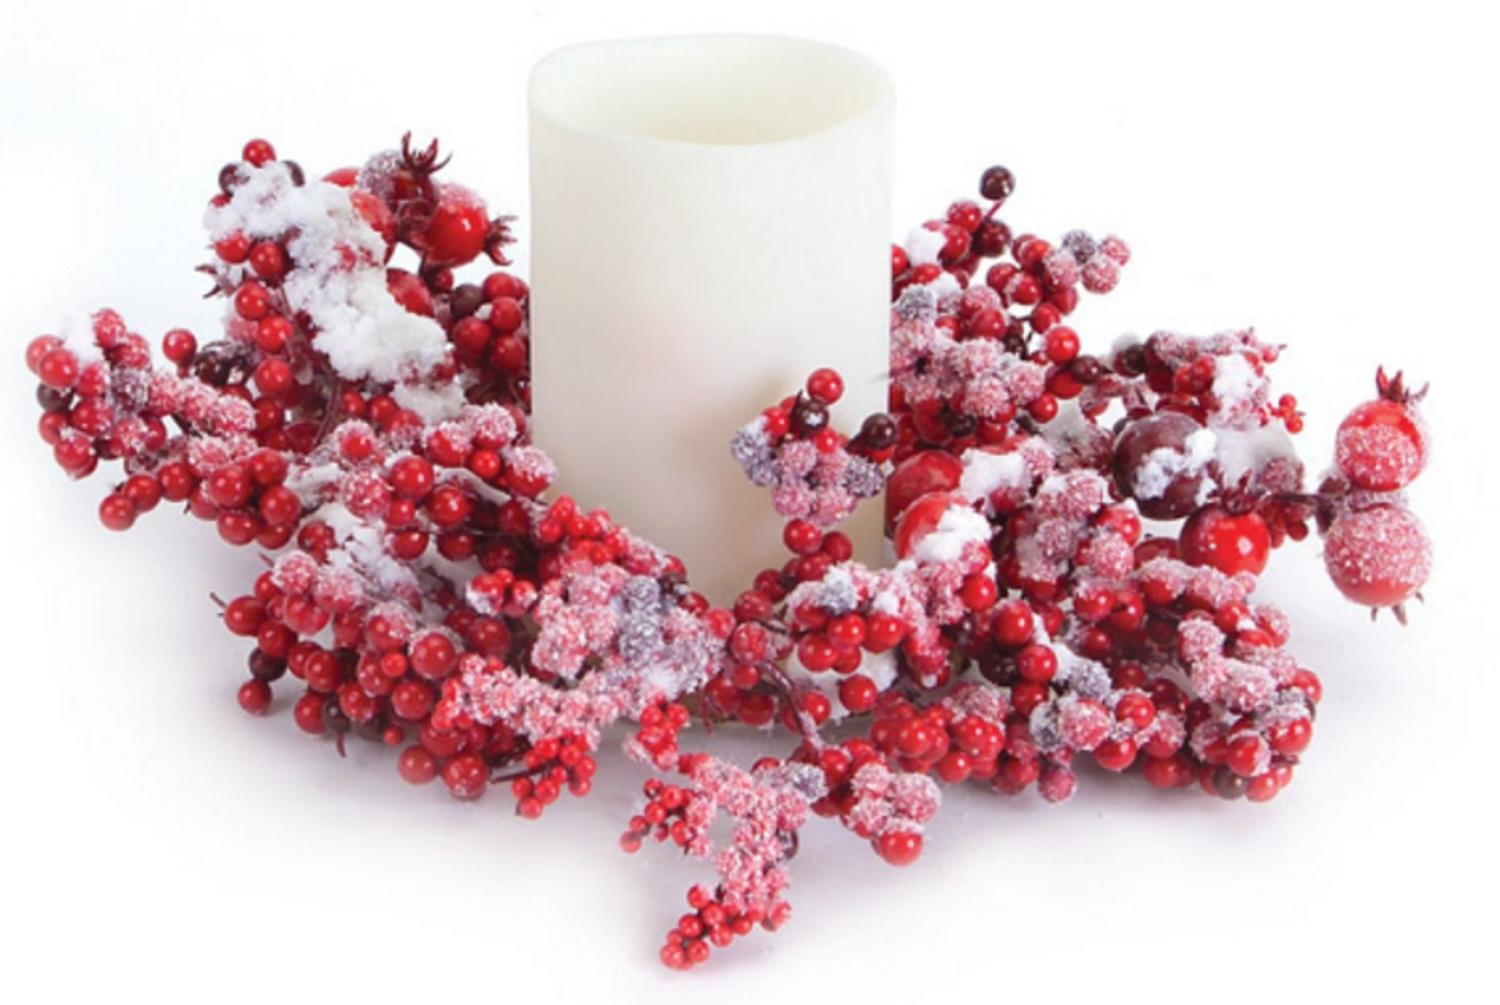 Club Pack of 12 Artificial Red Mixed Berry Christmas Pillar Candle Rings 10'' by Melrose